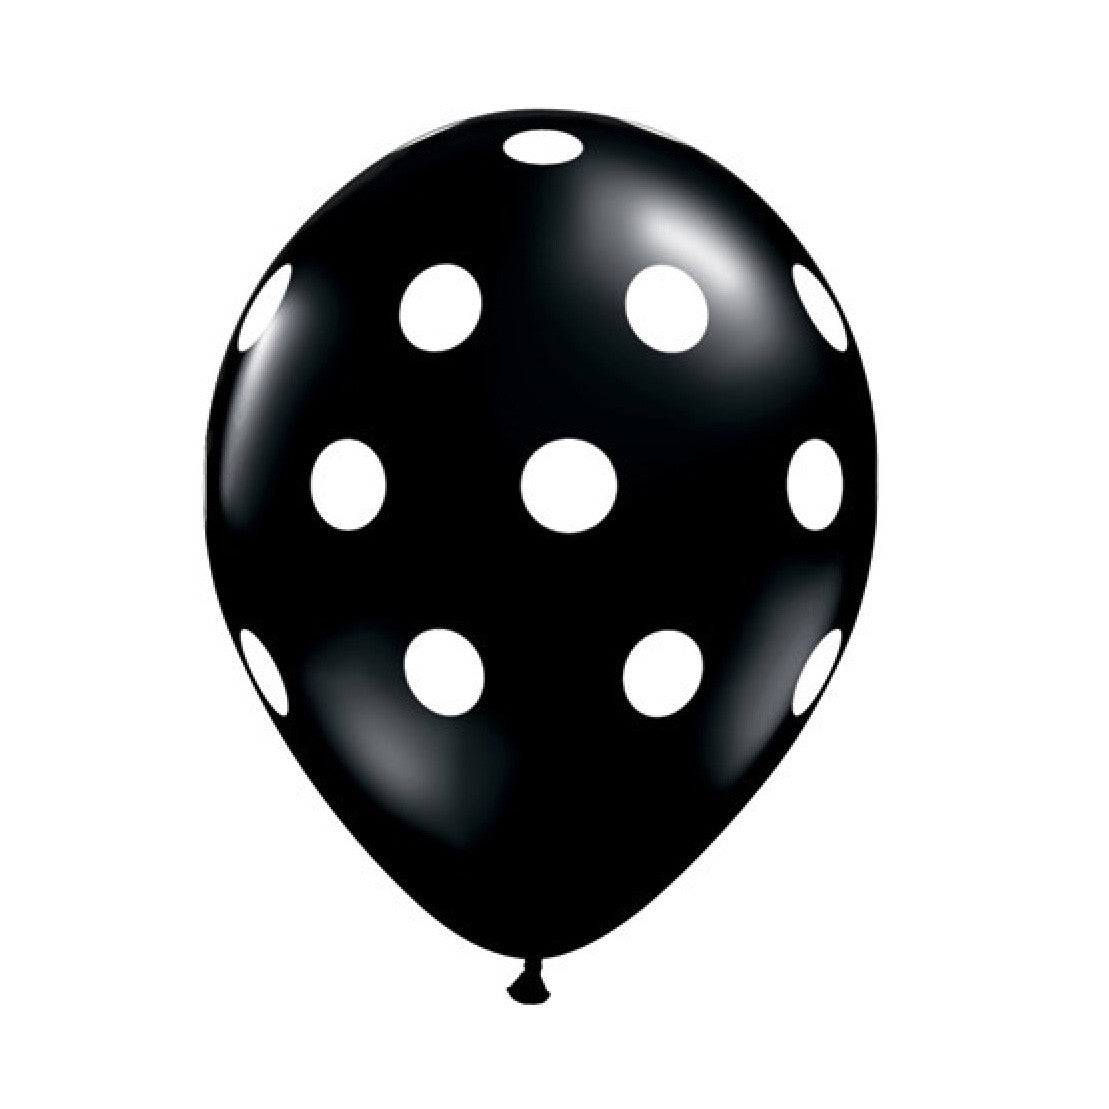 Big Polka Dots Opaque Balloons - Onyx Black